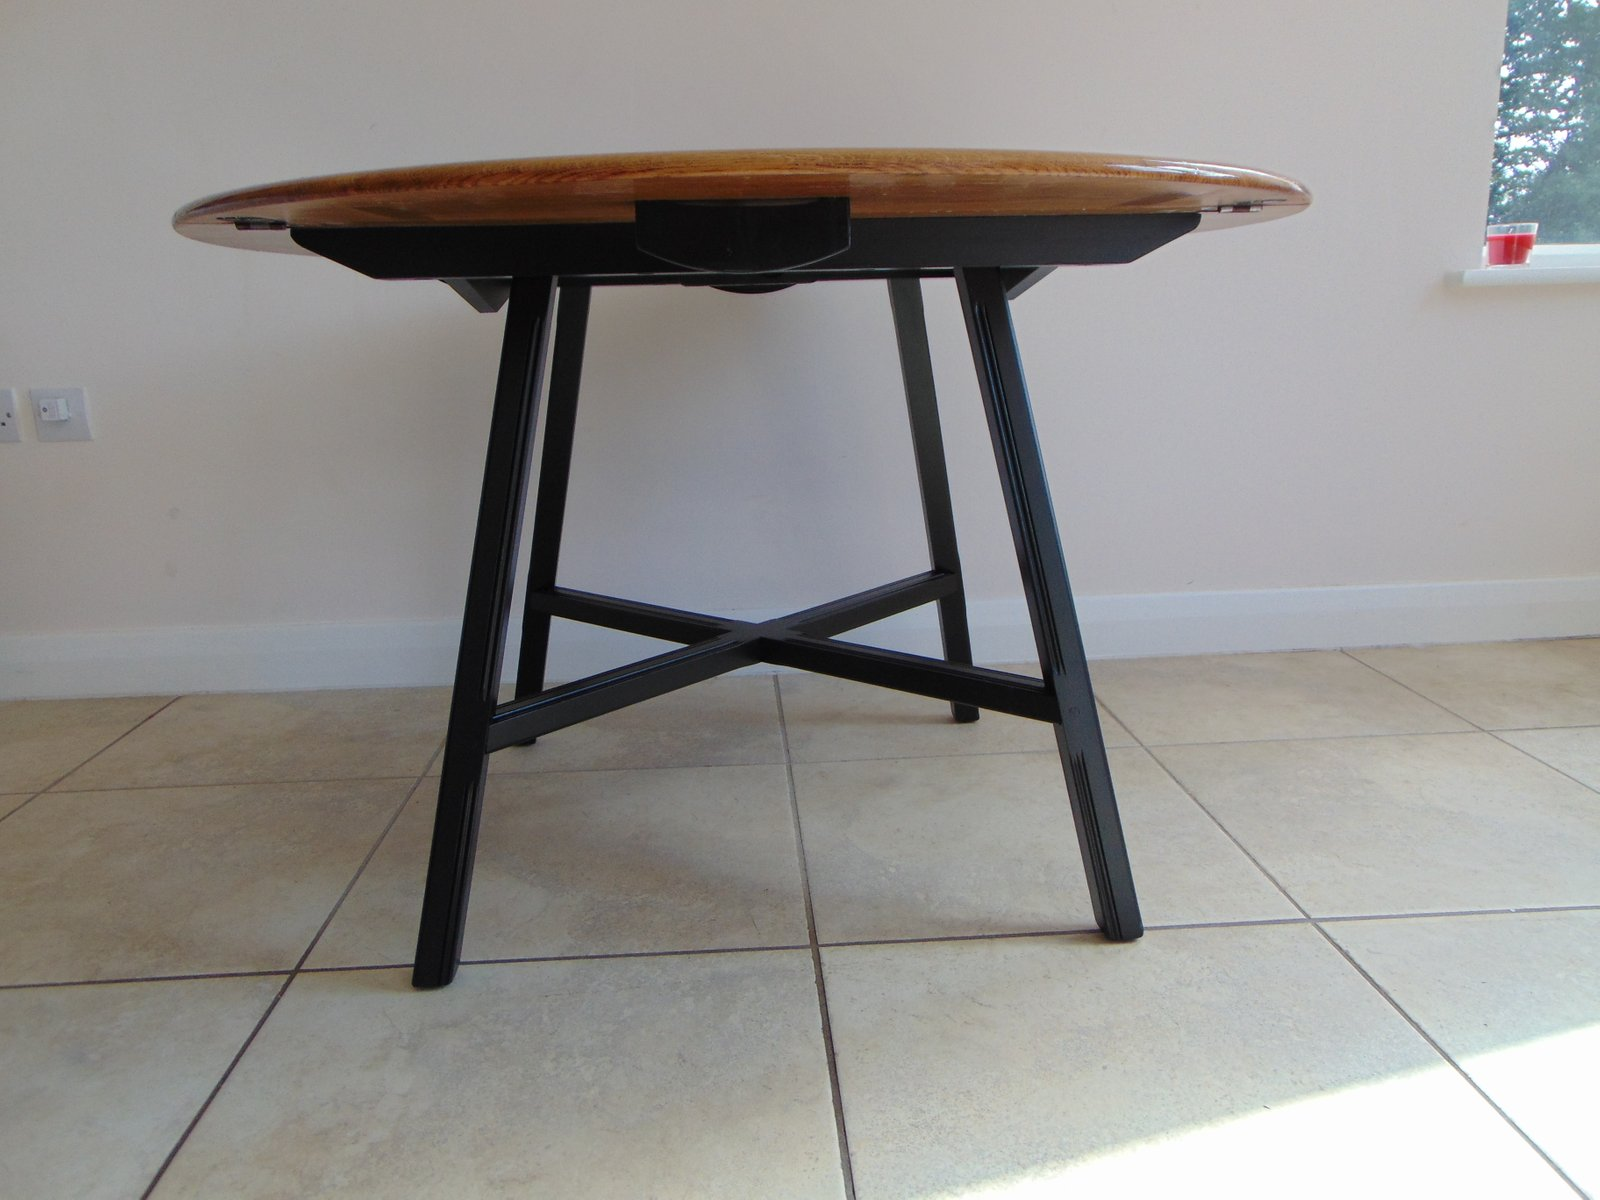 Vintage Drop Leaf Table From Ercol